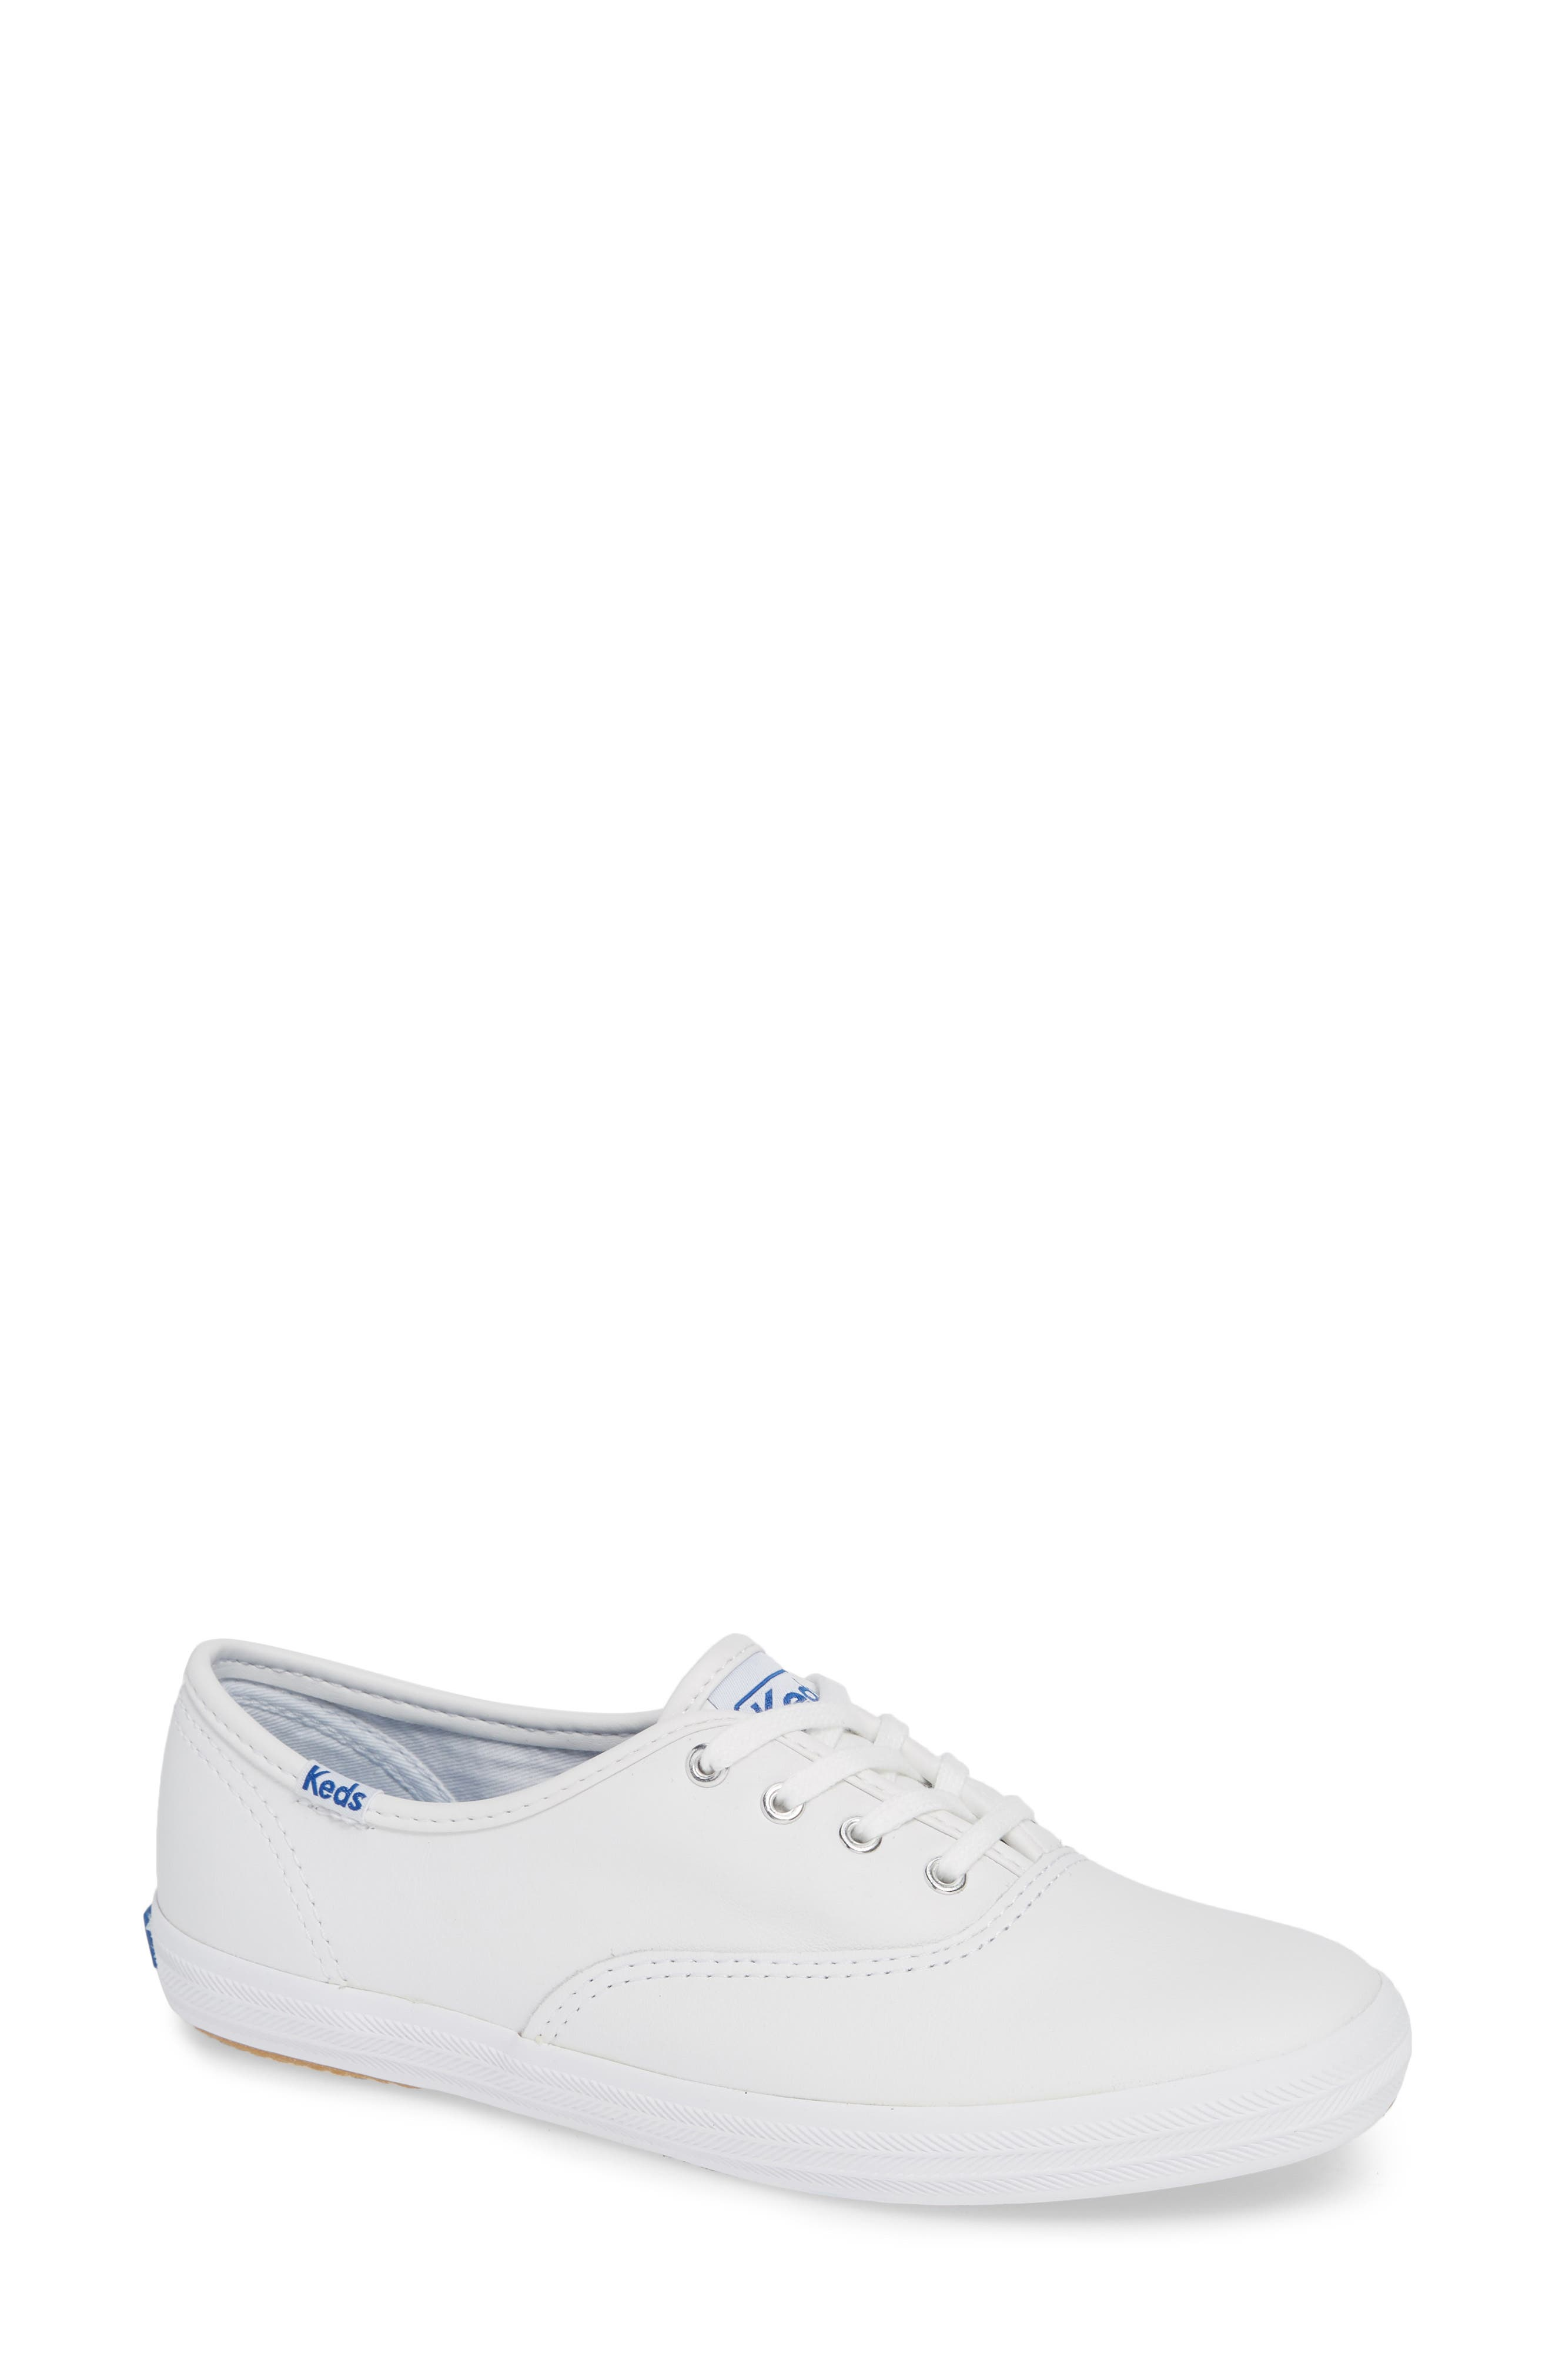 ce8afb4824f Keds Shoes for Women   Kids